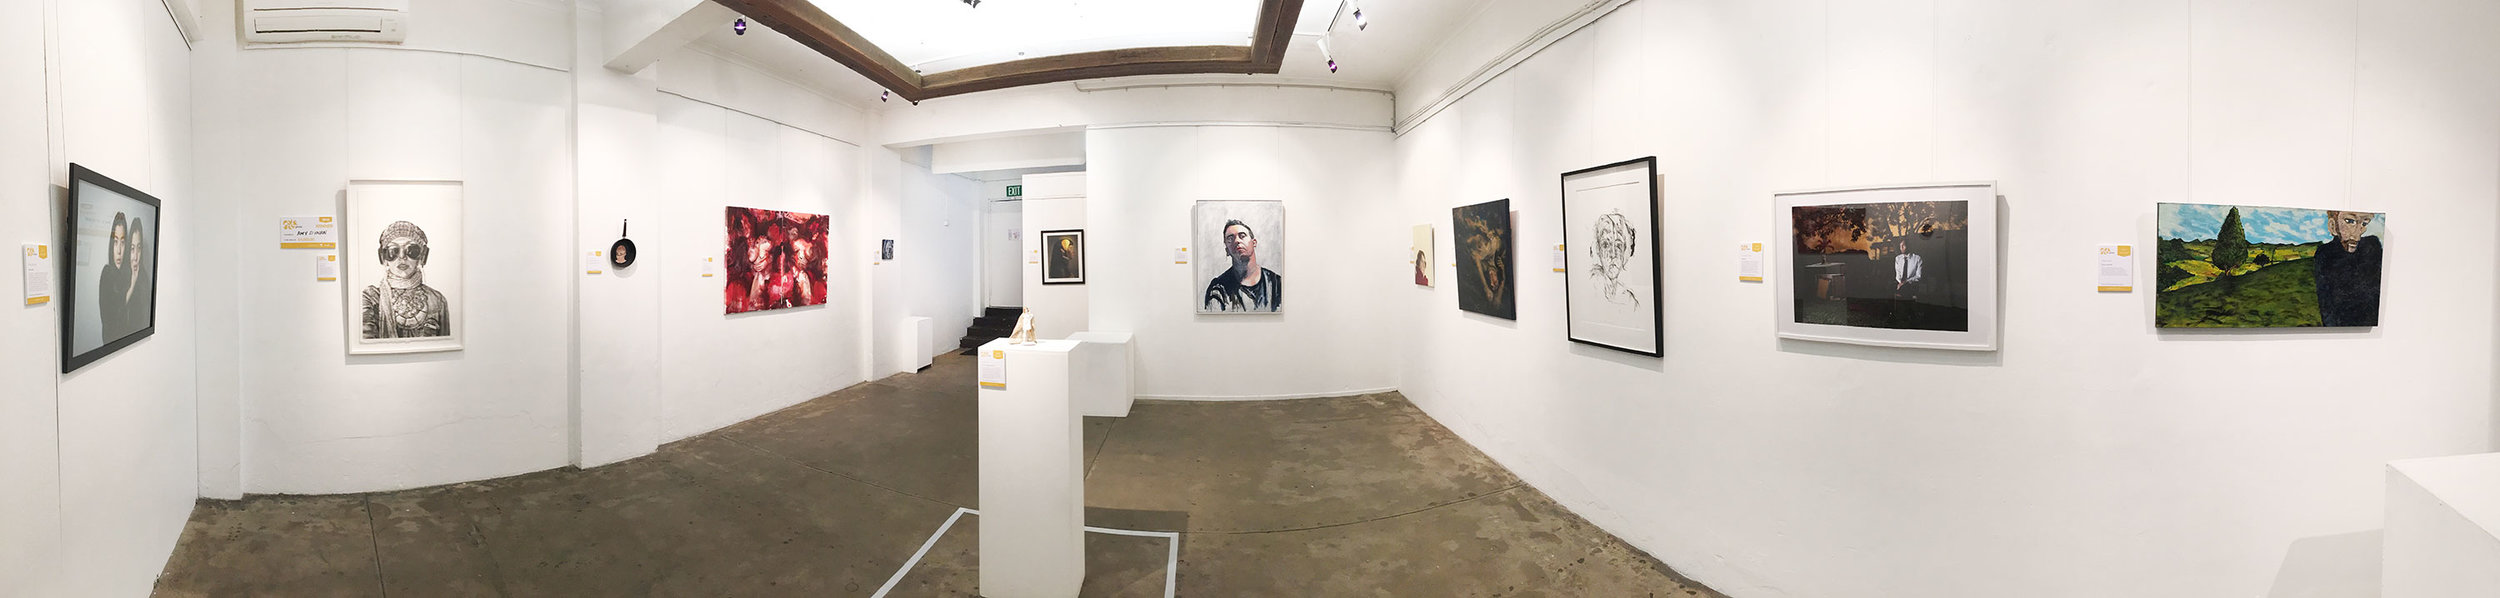 2016 Finalist exhibition held at Jugglers Art Space